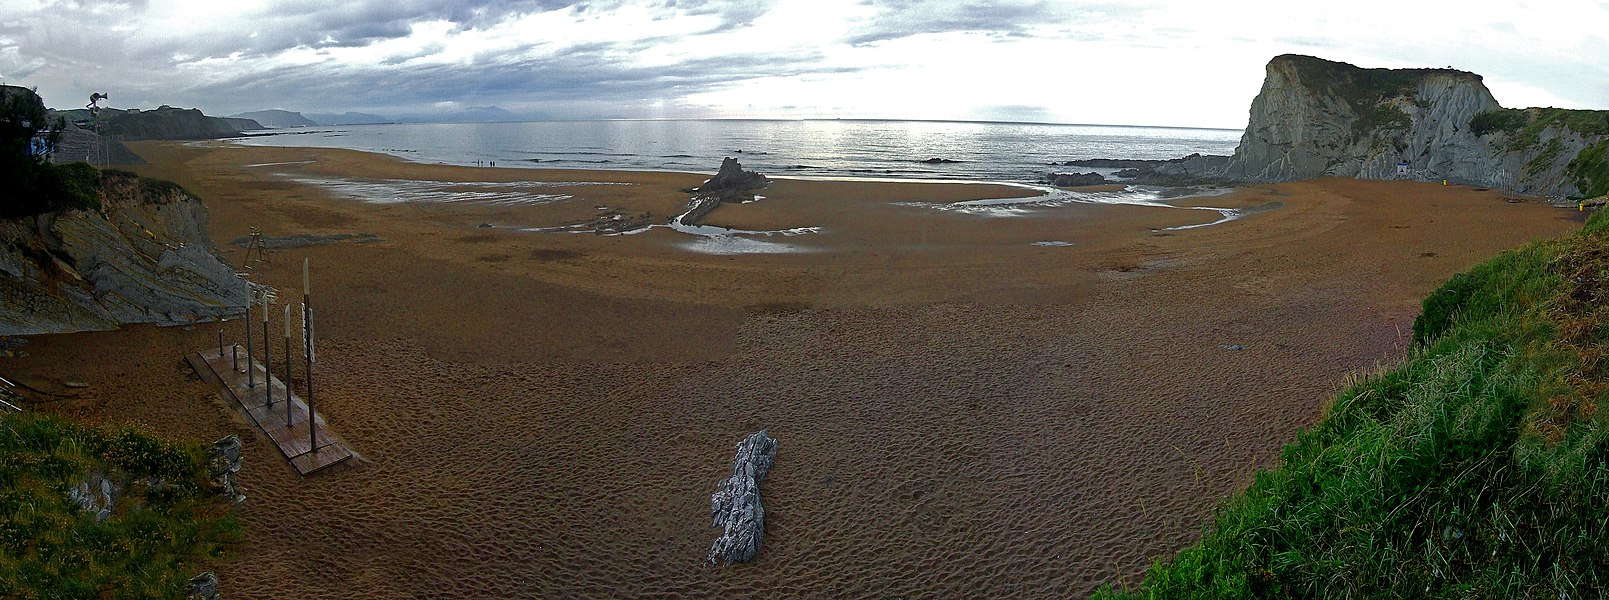 Panoramic of Arrietara (left) and Atxabiribil (right) beaches in Sopelana, Basque Country.